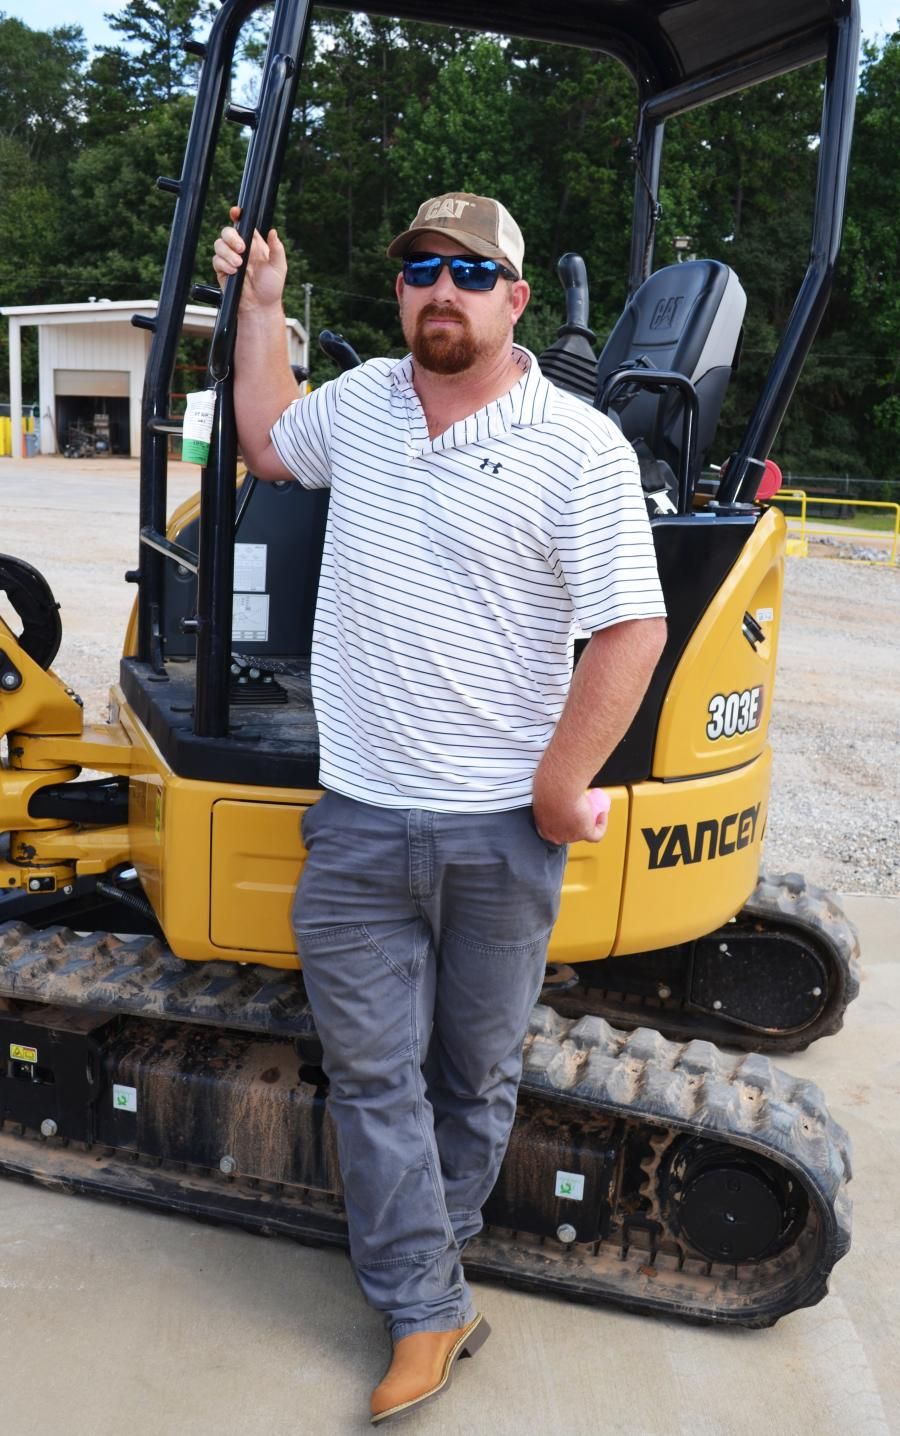 In just a tick over 30 seconds to complete the mini-excavator challenge, Blake Haagen of Garrett Paving, Athens, Ga., was the winner of the event and received a $500 credit towards his next Yancey Rents equipment rental.